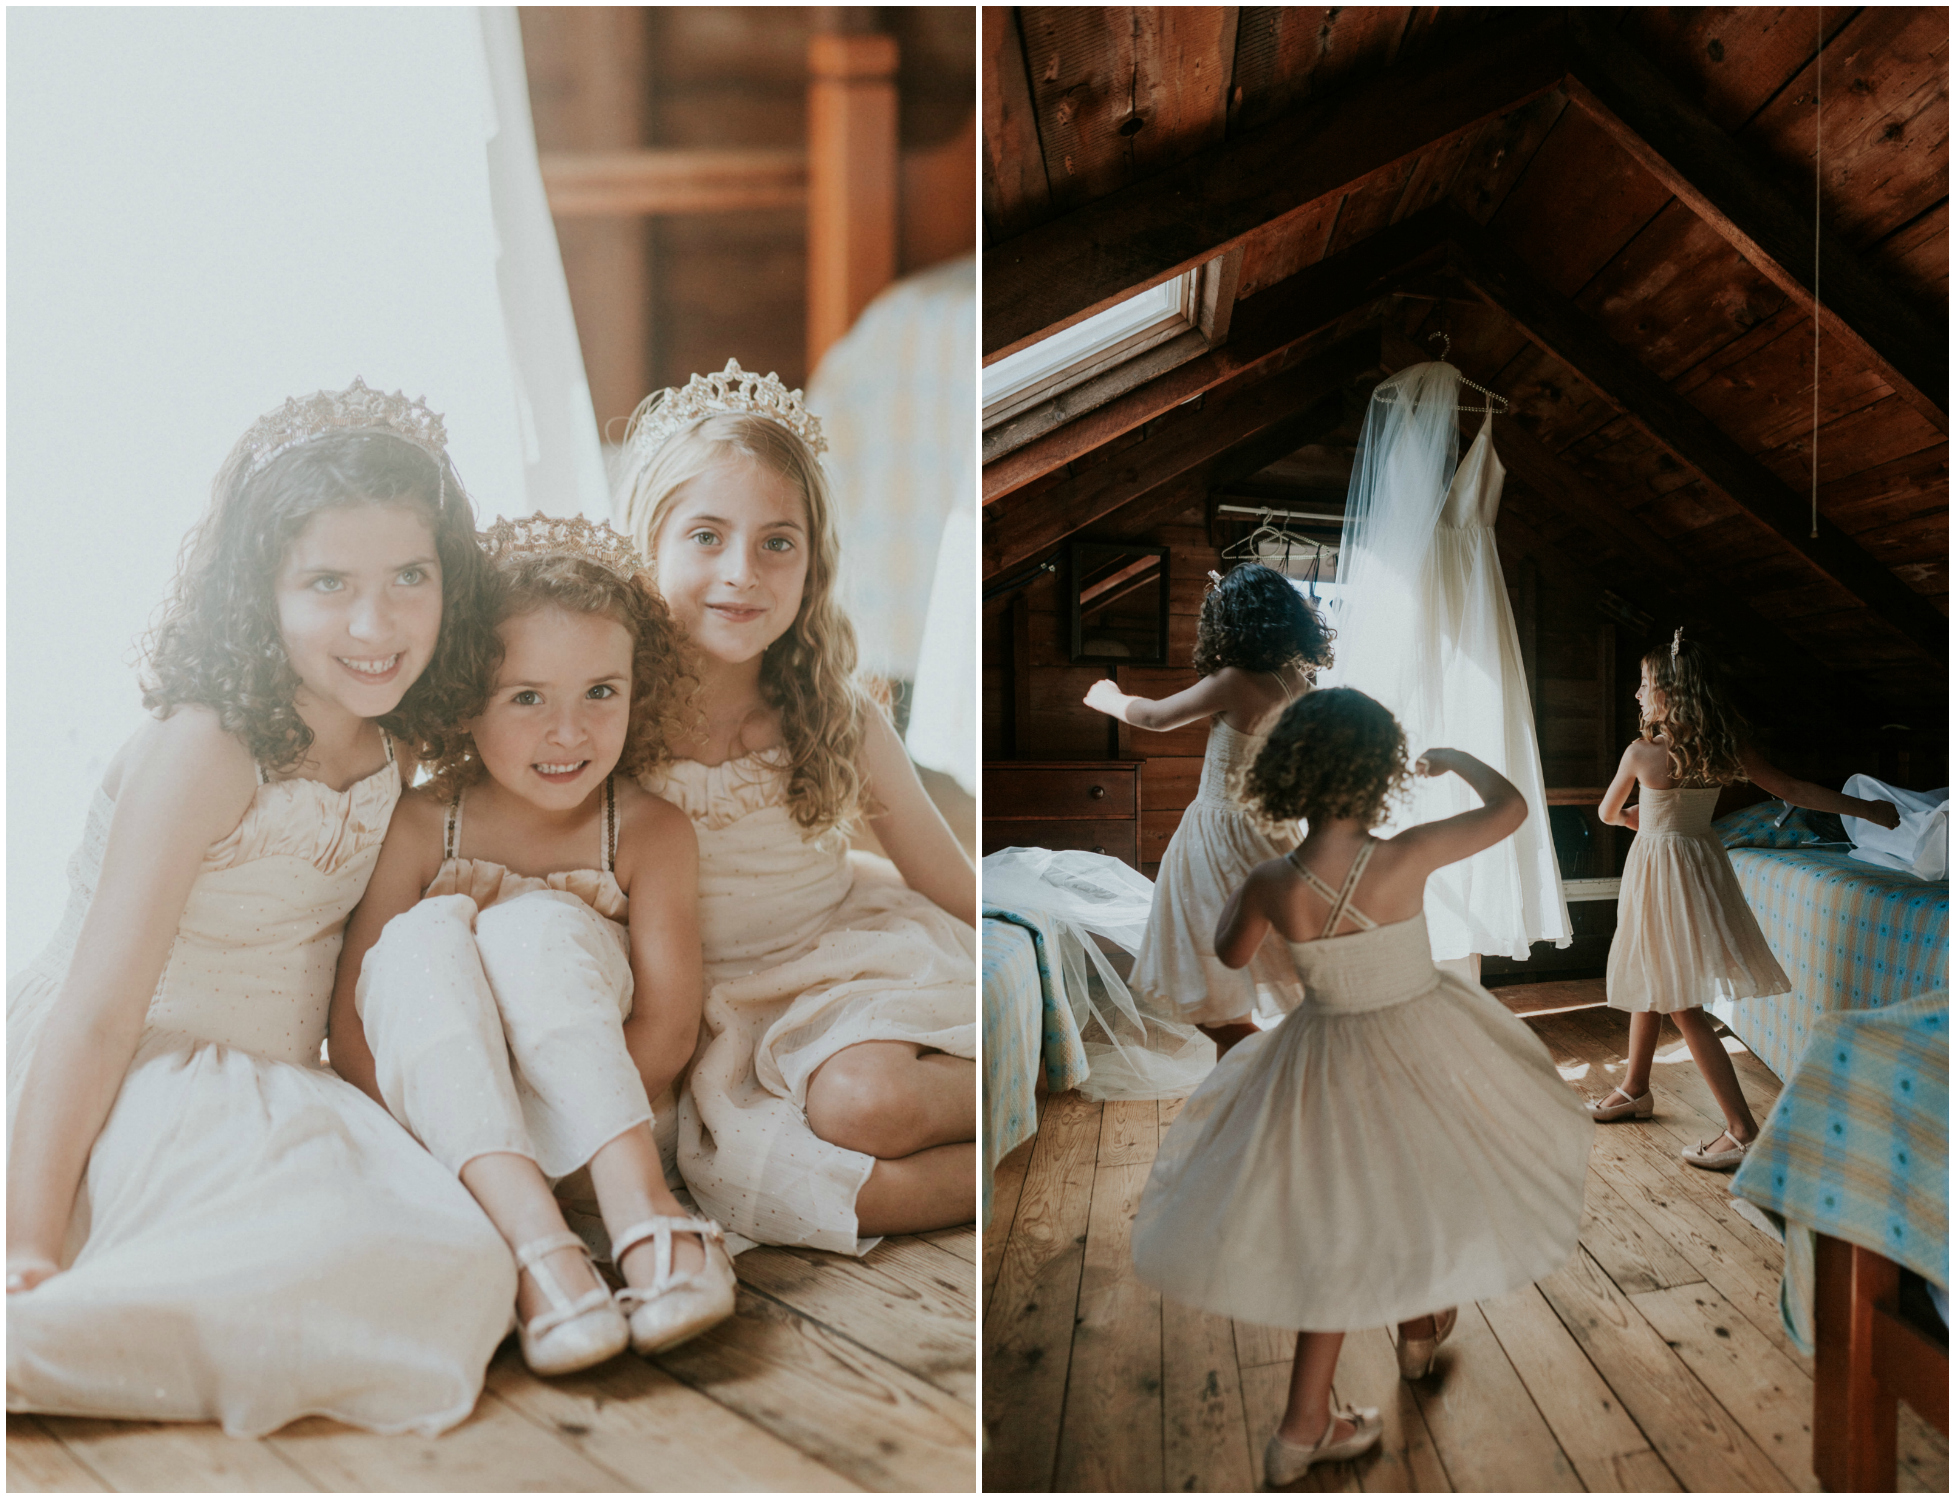 flower girls in attic, flower girls twirling near wedding dress, flower girls wearing crowns